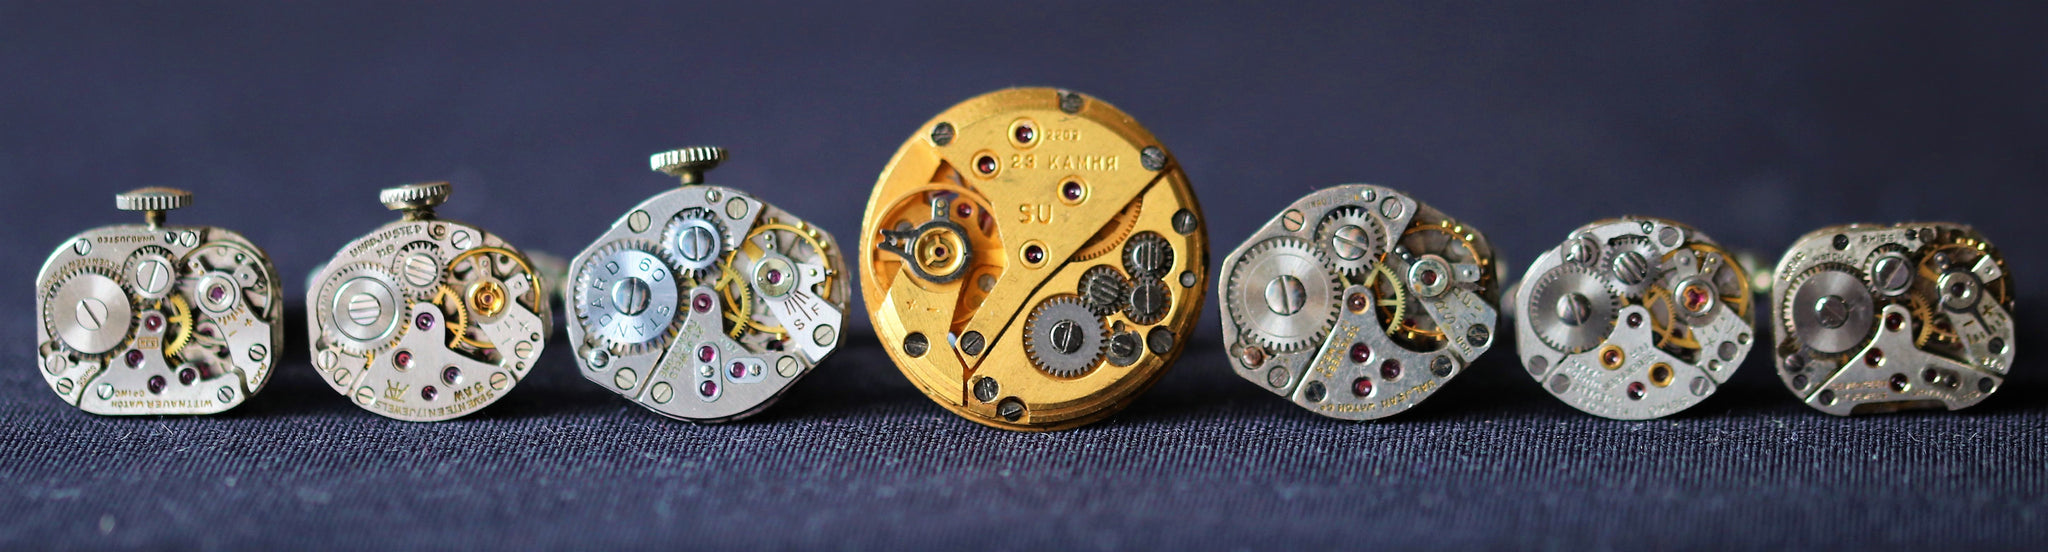 Envelope Watch Movement Cuff Links